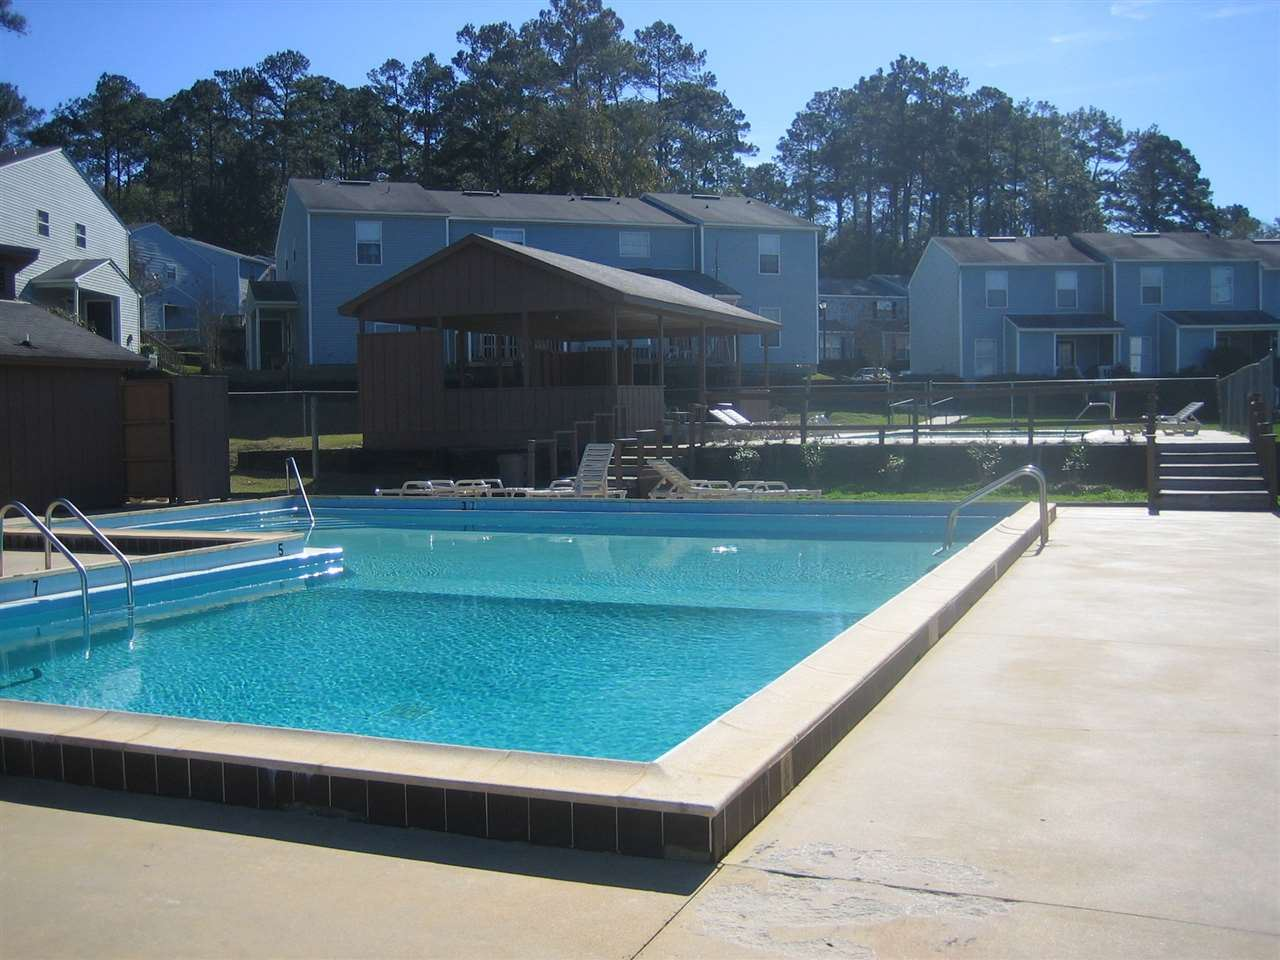 Photo of 2223 S Timberwood Circle #219, TALLAHASSEE, FL 32304 (MLS # 317164)